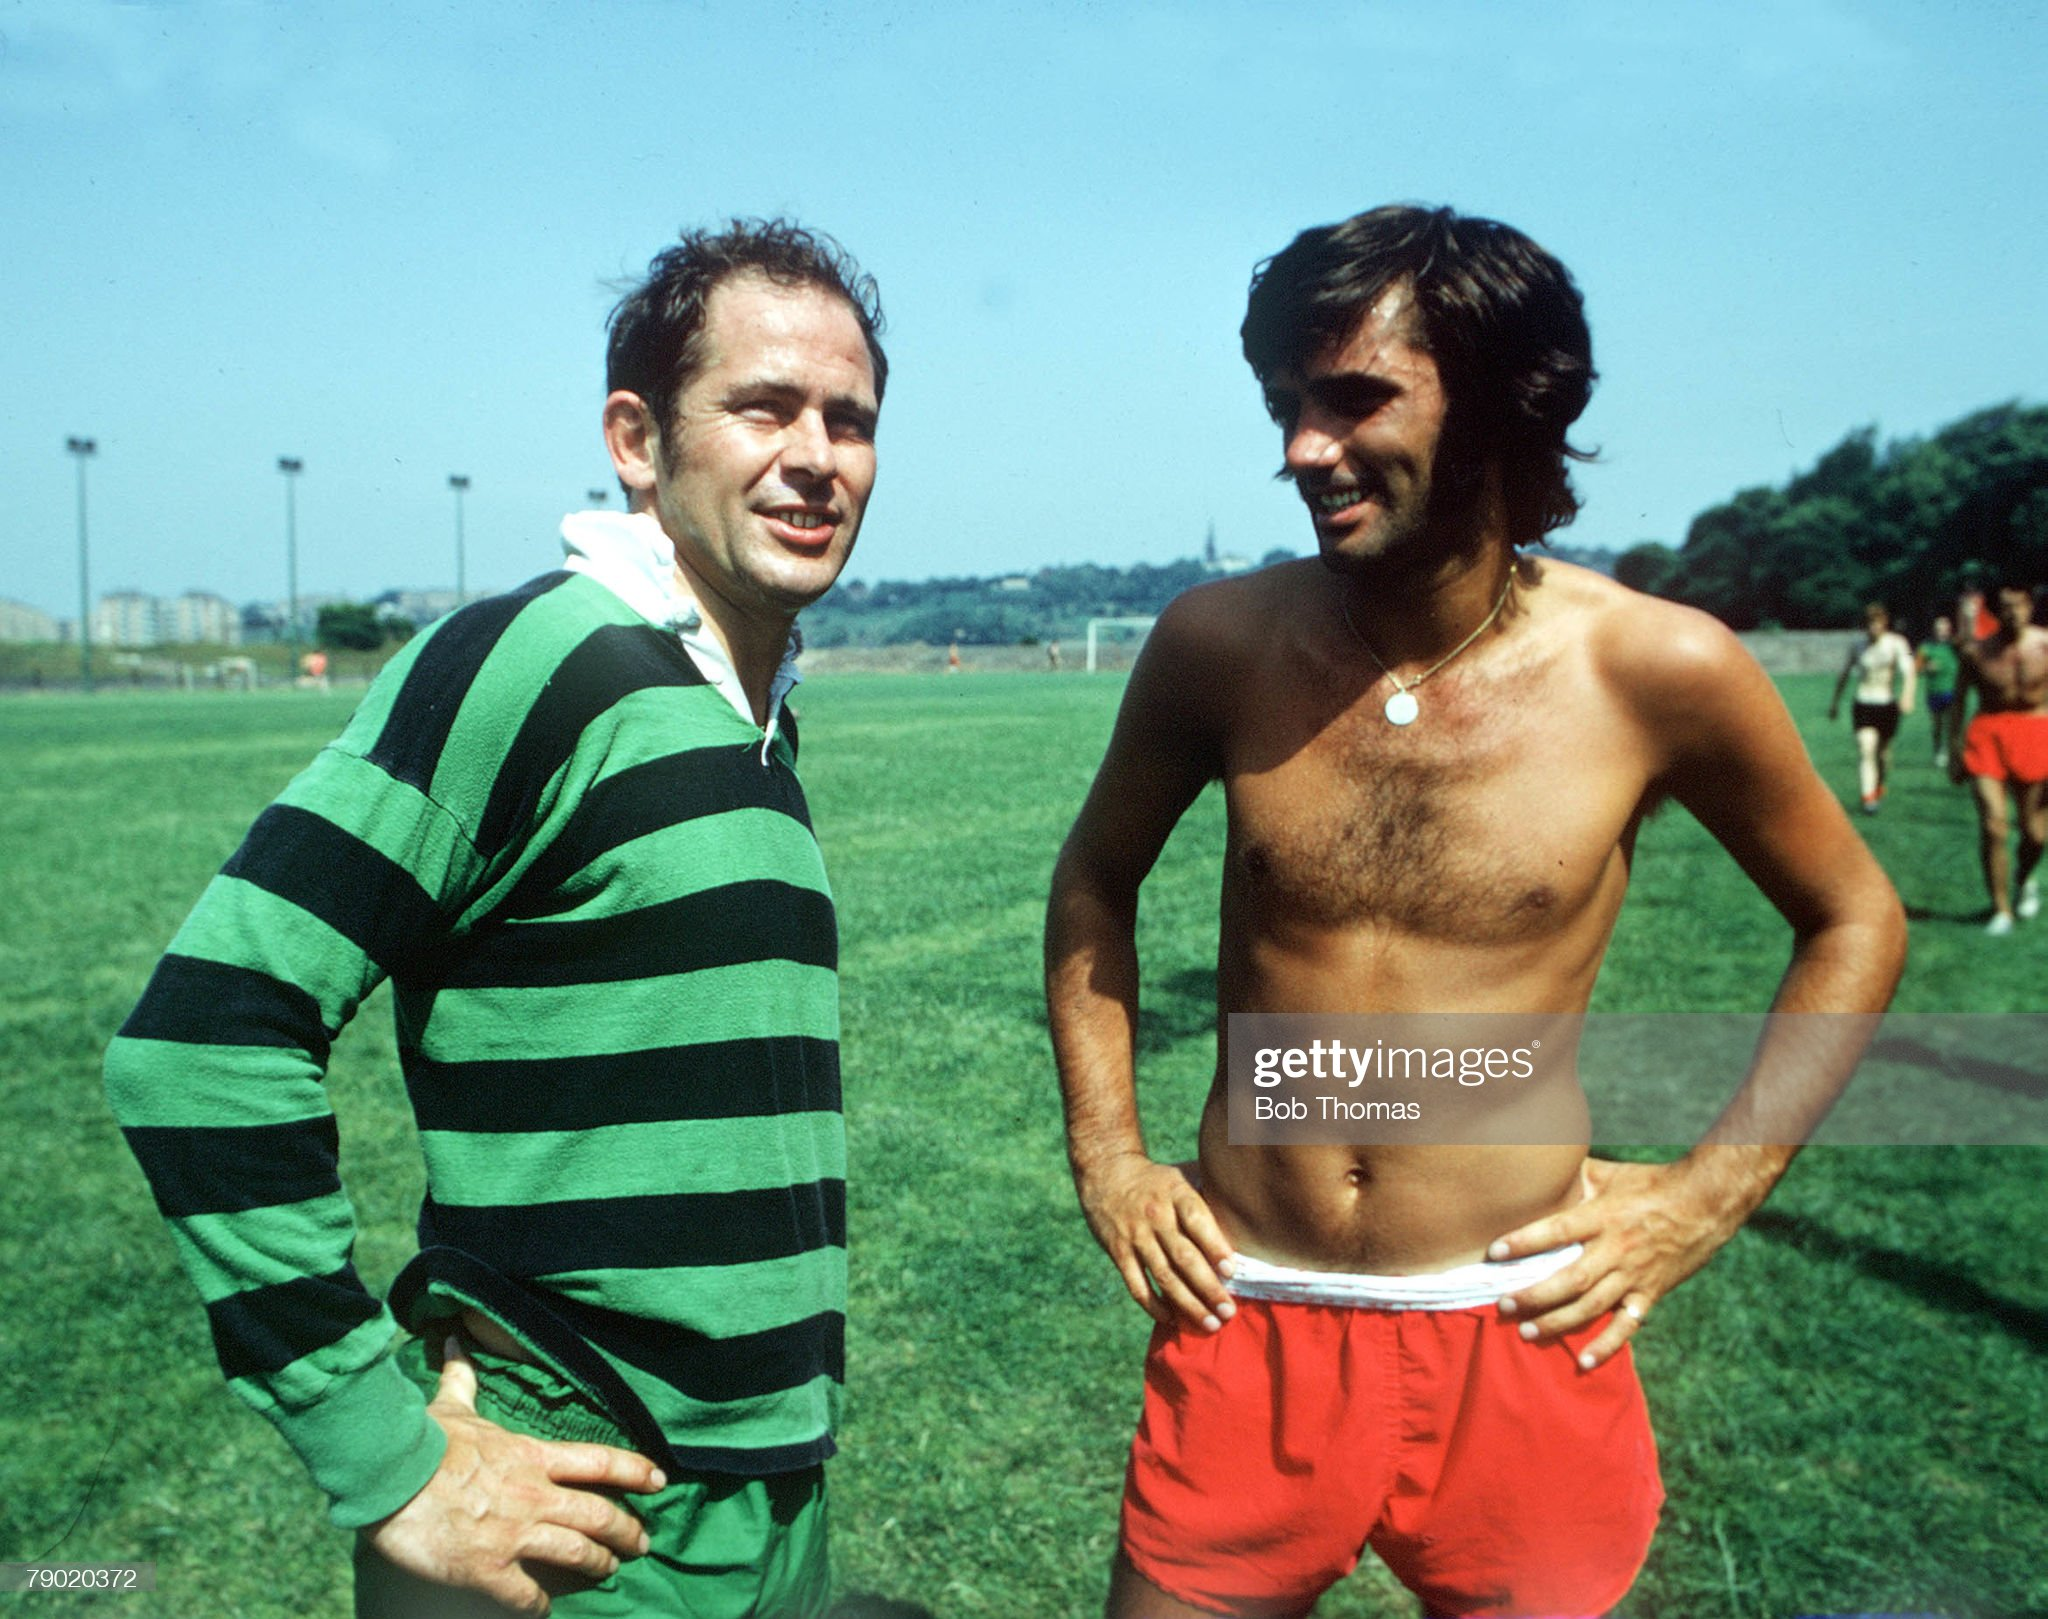 football-circa-1970-manchester-united-star-george-best-speaks-with-picture-id79020372